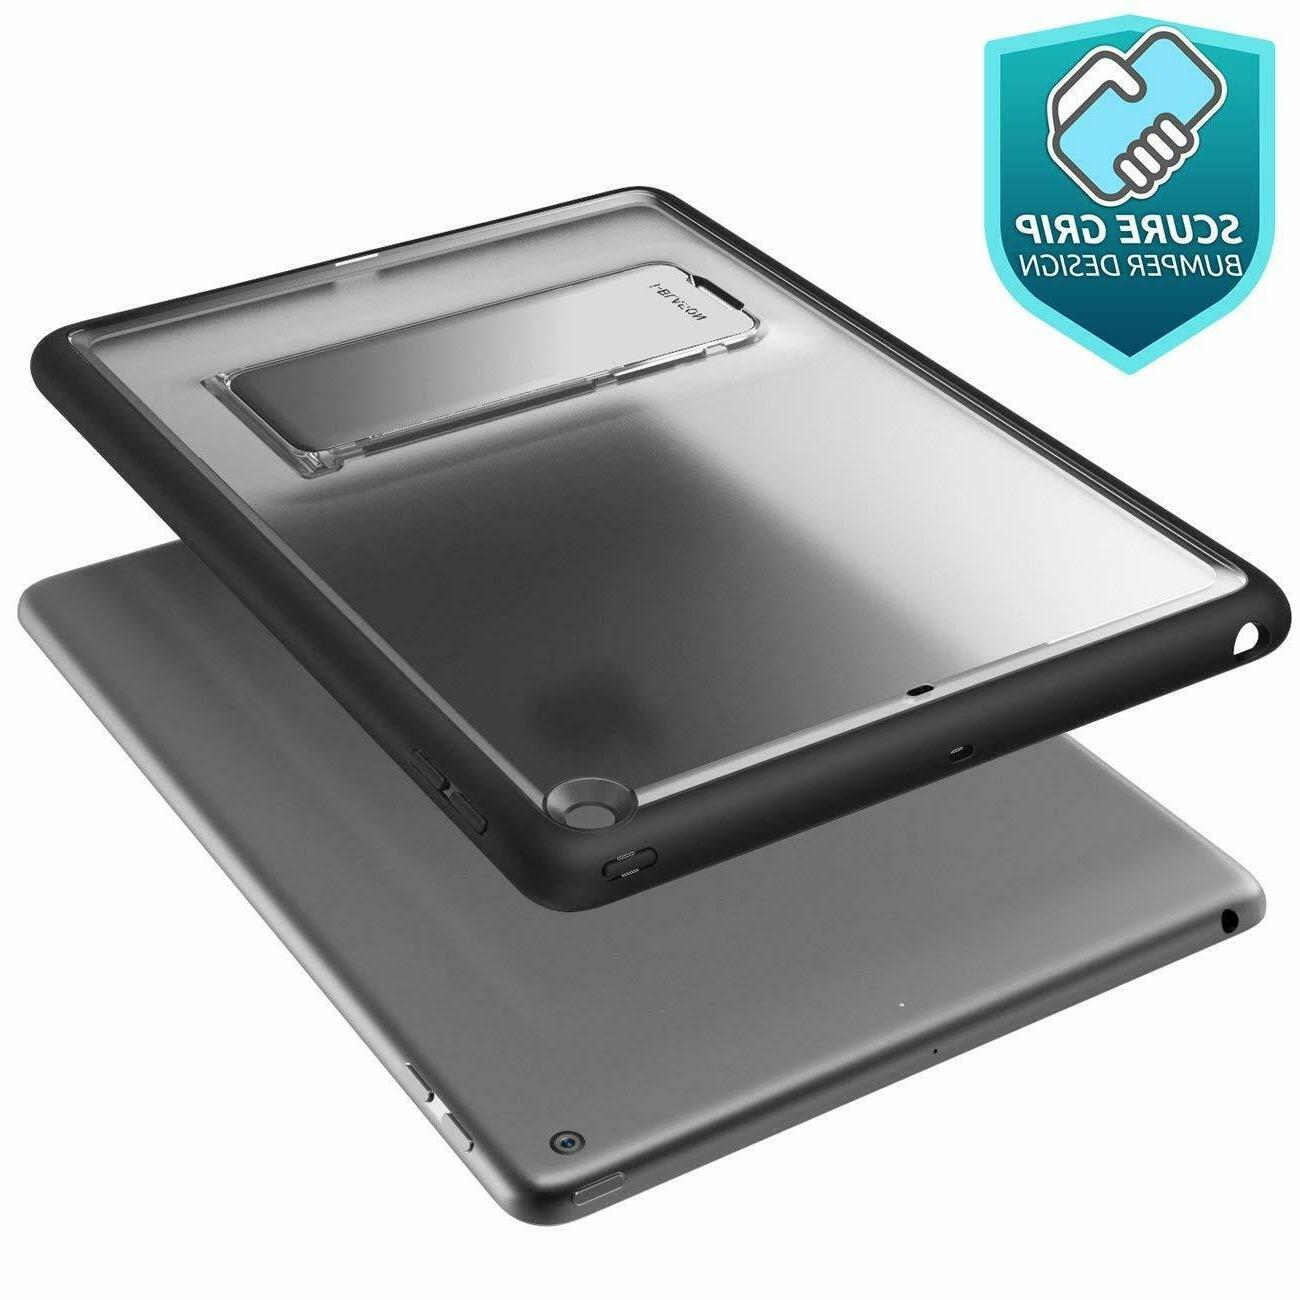 iPad Case Hybrid Protective Cover New